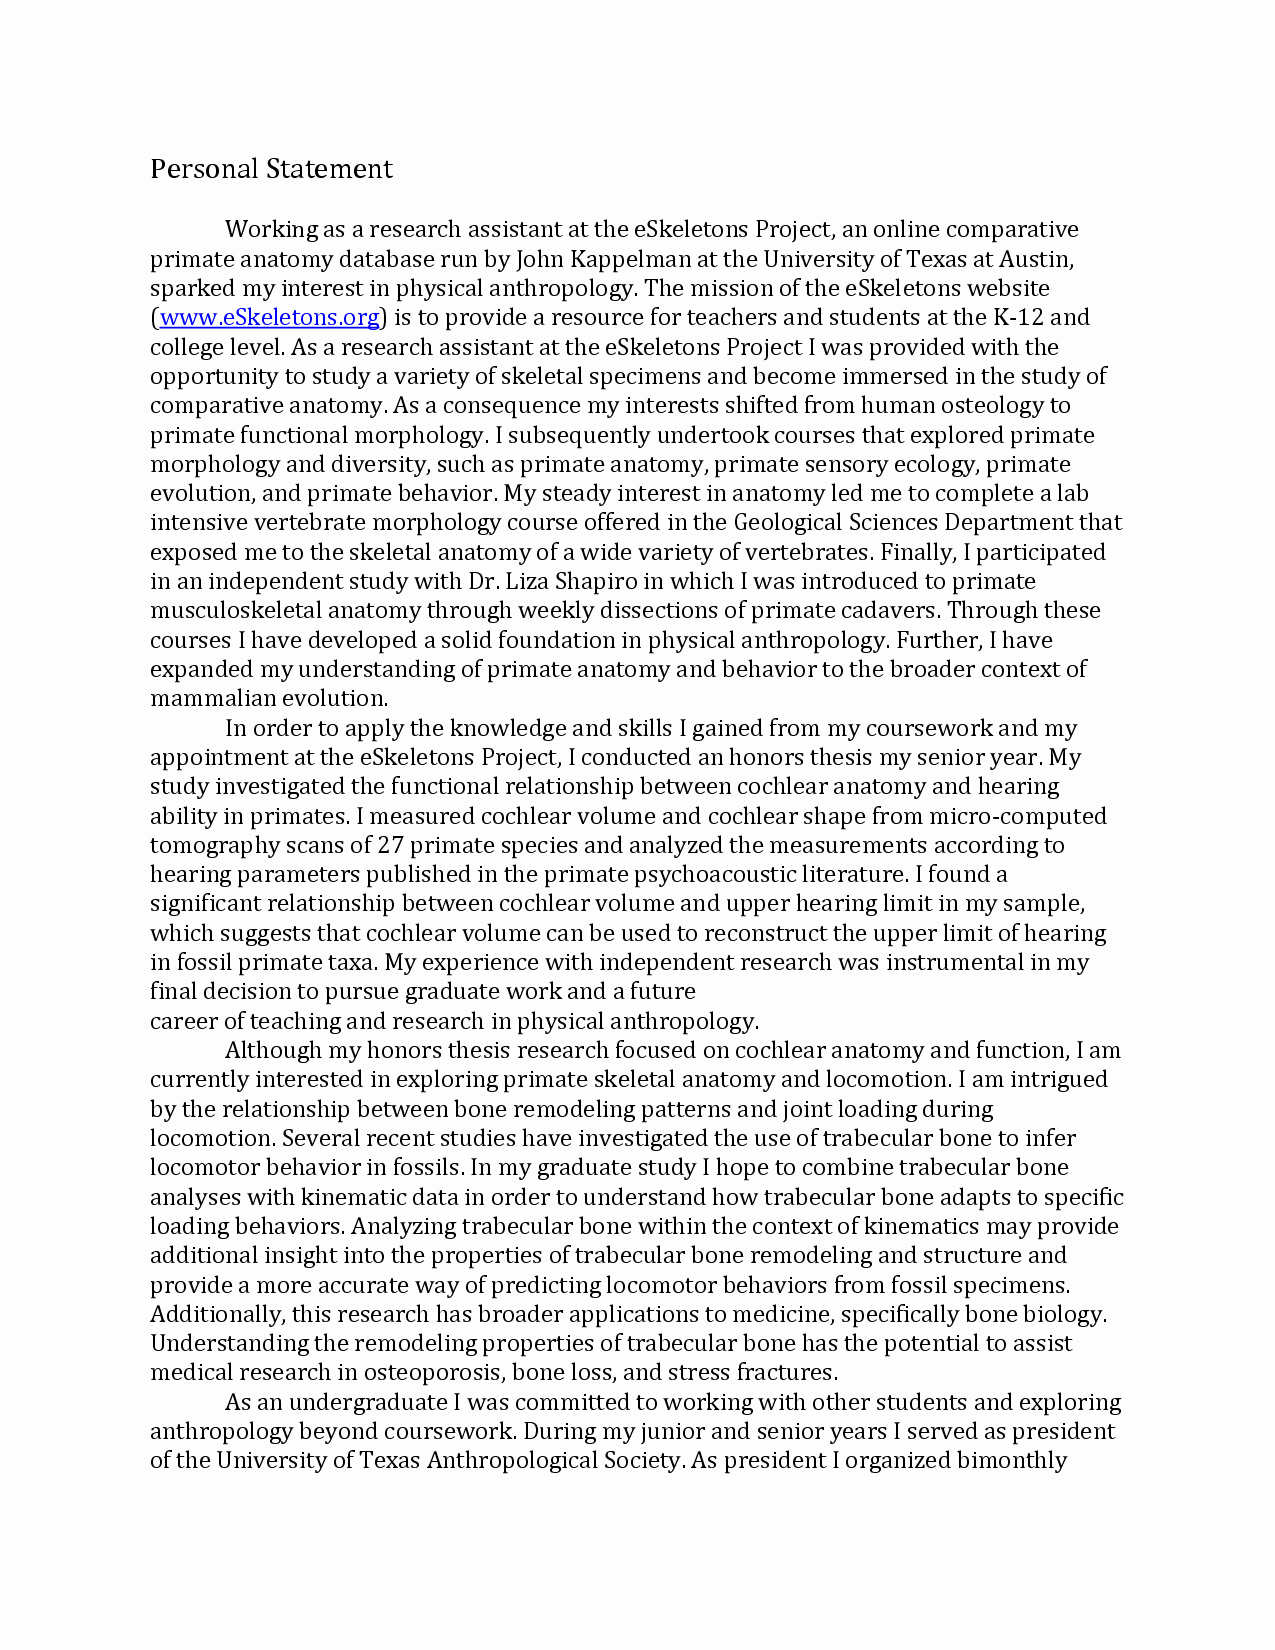 Personal Statement Template for College Fresh Best Essay Contributors Invited to Leaders forum 2015